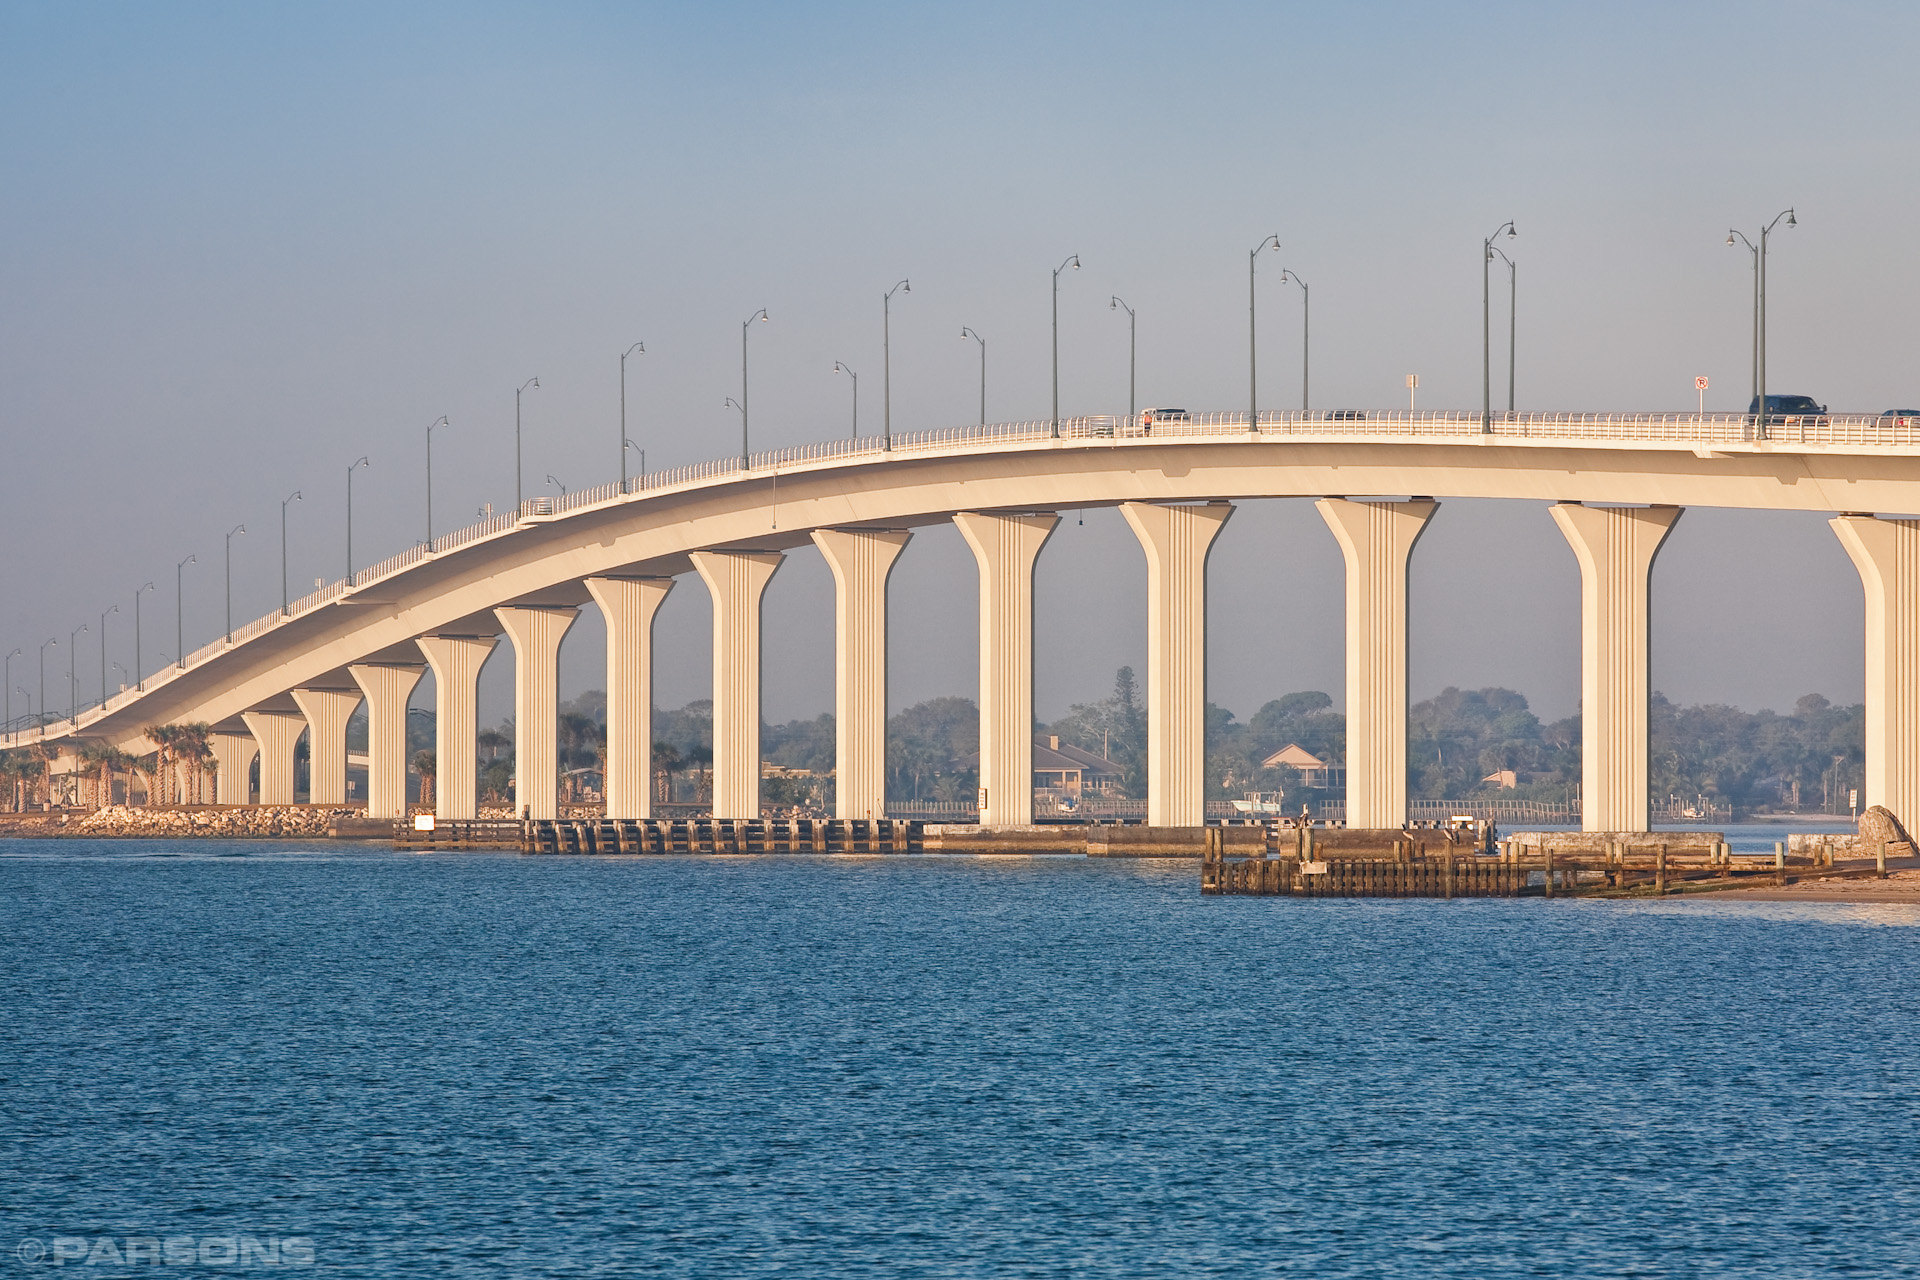 Civil-Engineering-Ernest-Lyons-Bridge-Stuart-Florida.JPG